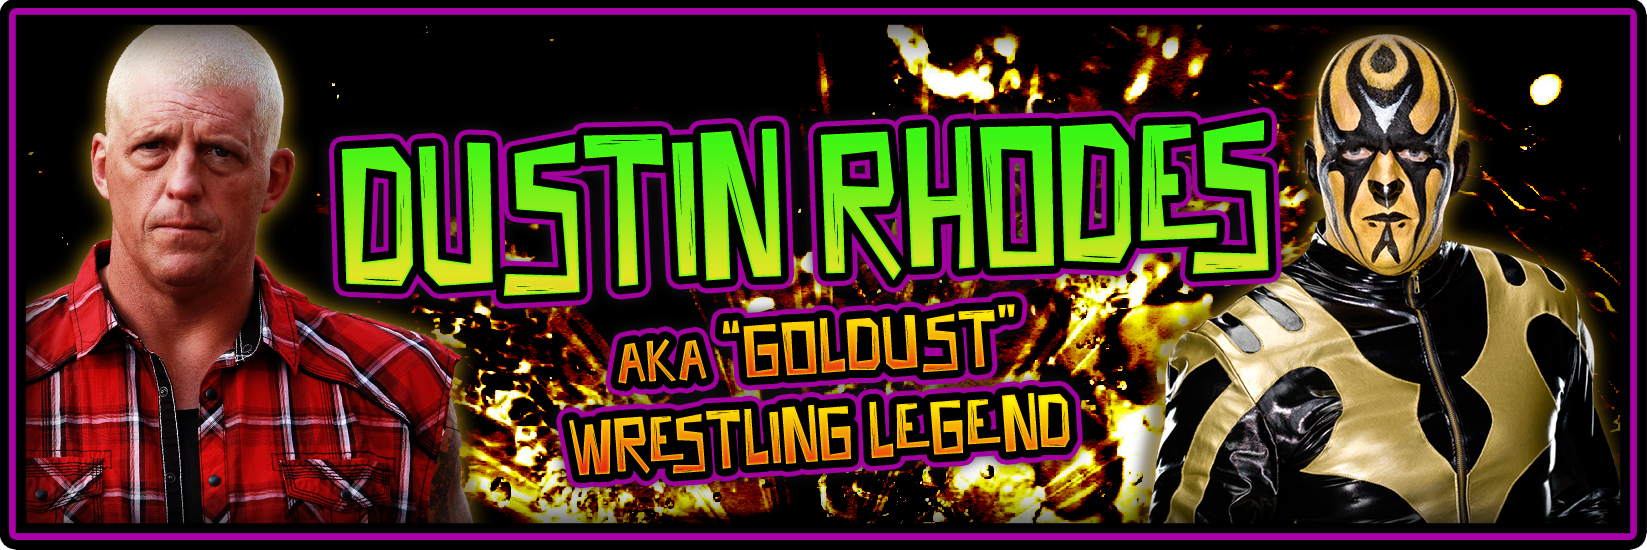 Dustin-Rhodes-Website-Banner.png